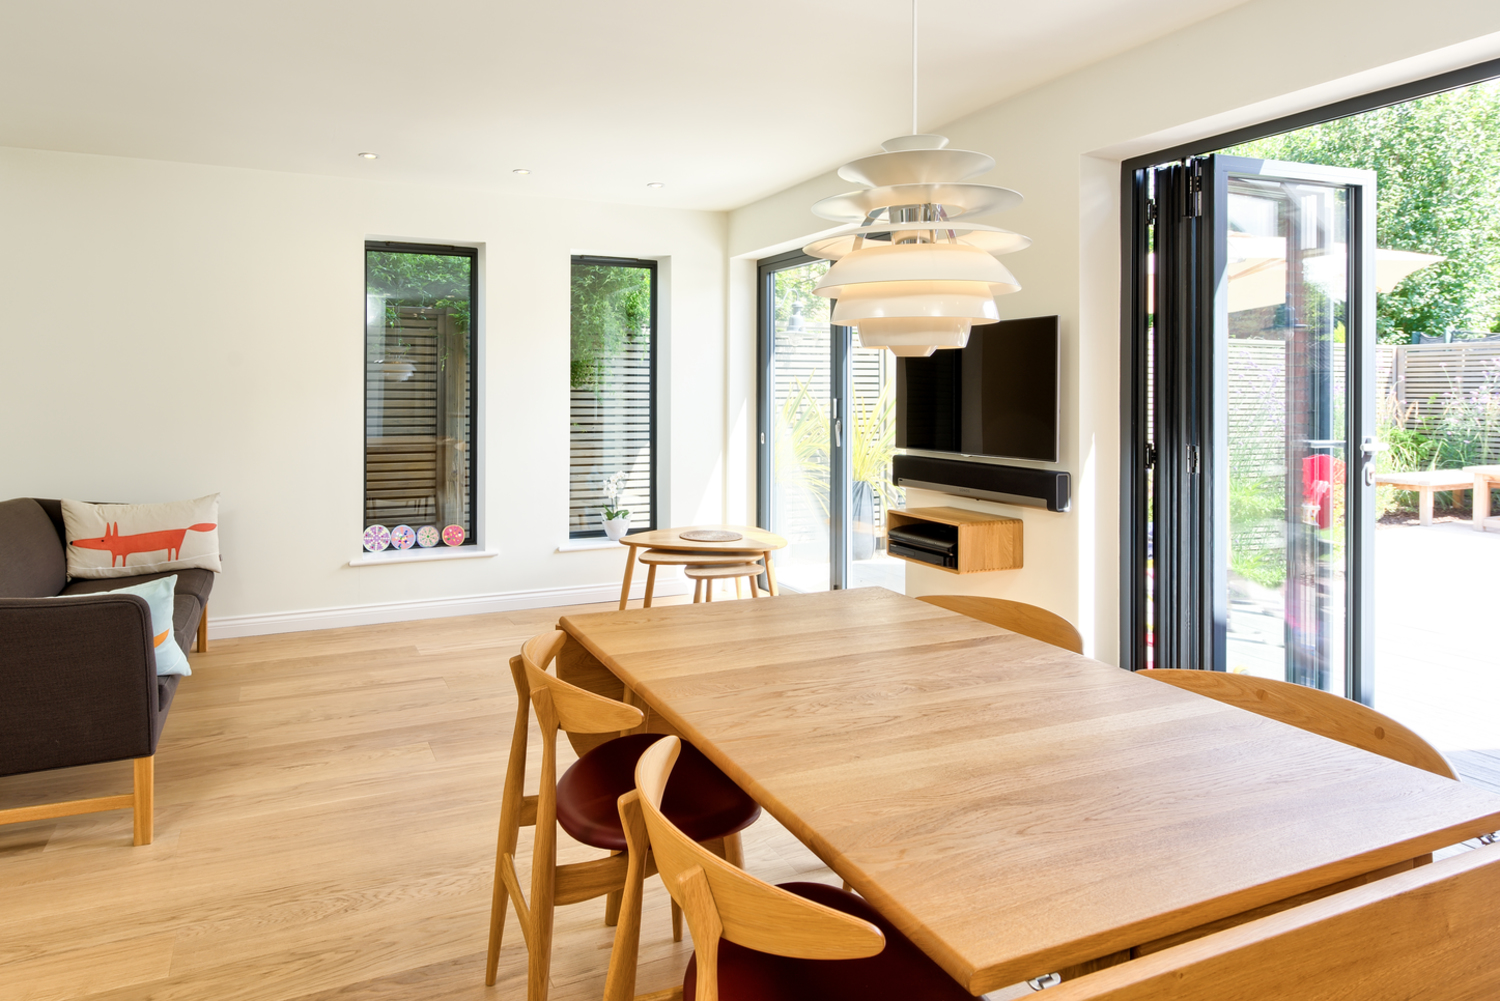 Windows and sliding doors for natural light